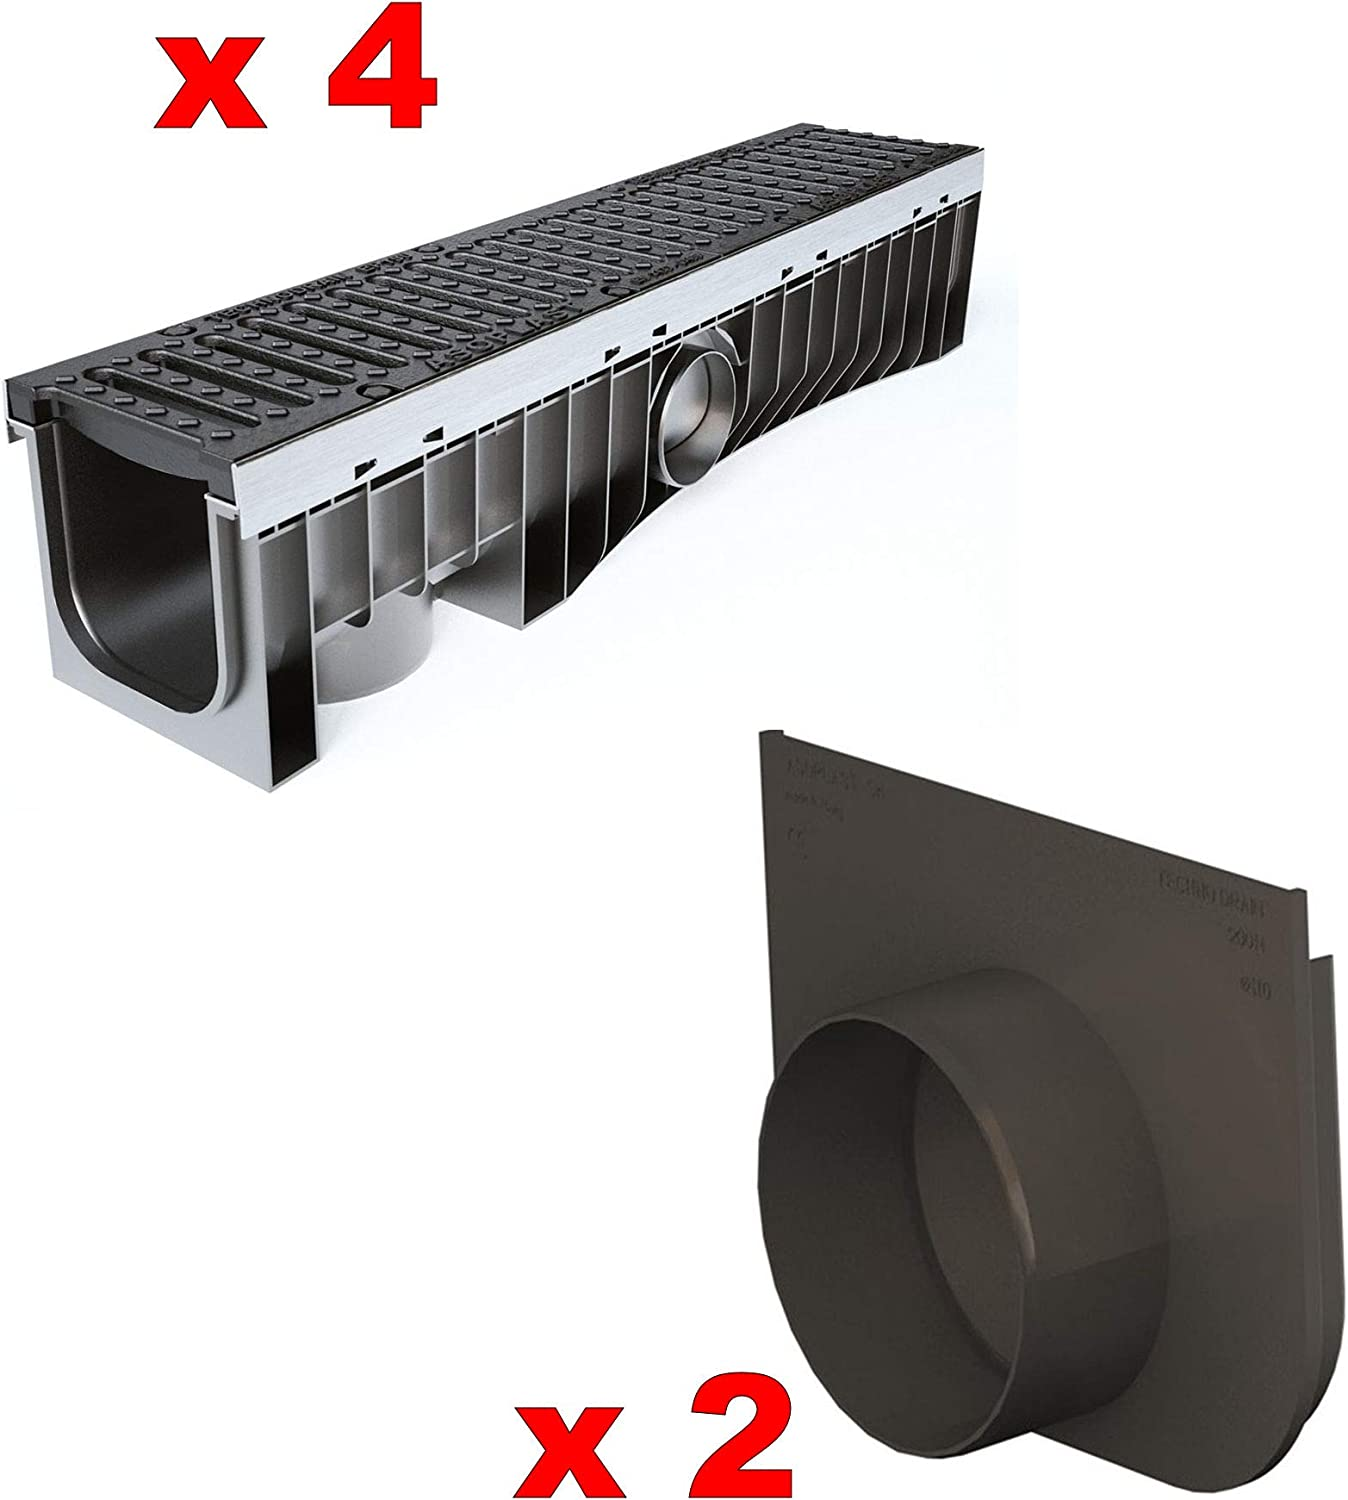 4 x Clark Drain CD D10-210-18P 100mm High Heavy Duty D400 40 Tonne Channel PVC Channel with Ductile Iron Drainage 18mm Slot Grating Locked metre 1m Length Water Rain Storm Shower Driveway